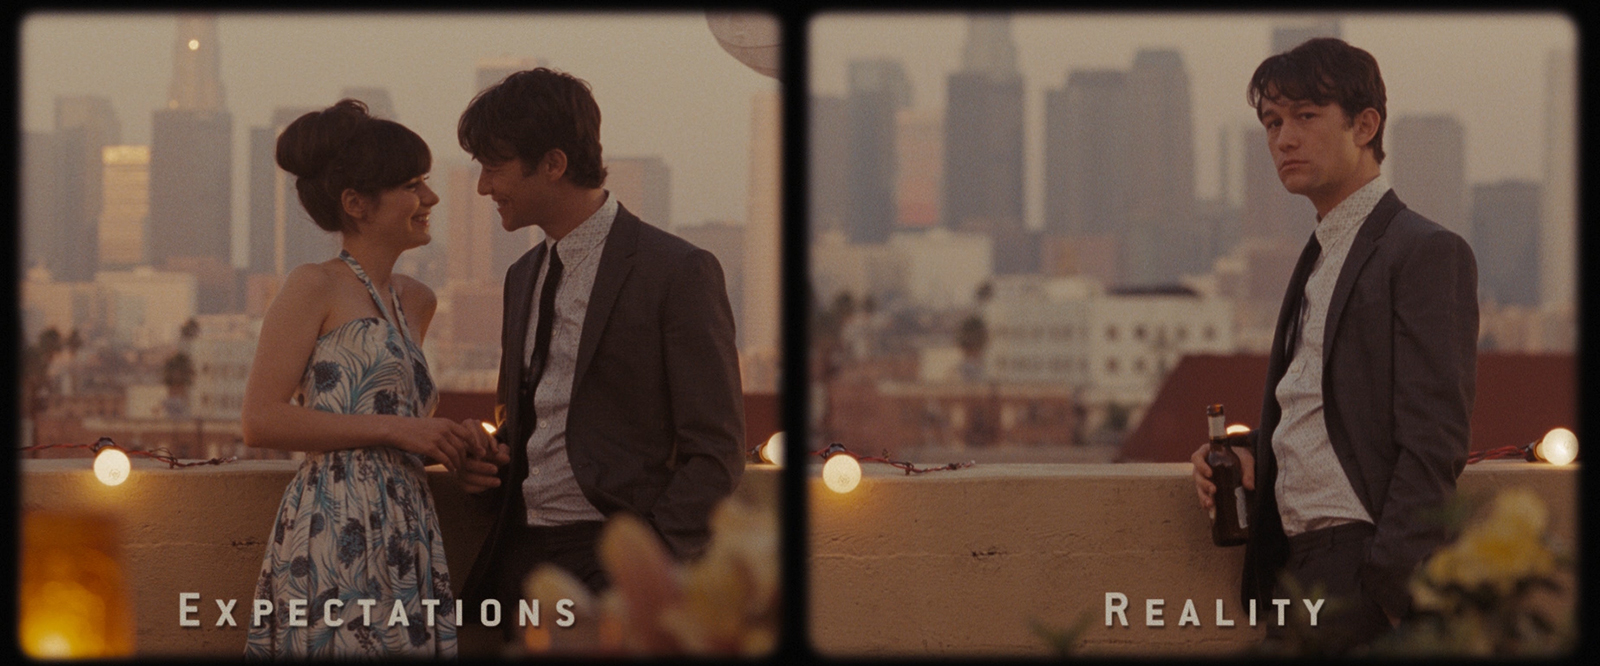 500 Days of Summer screenshot